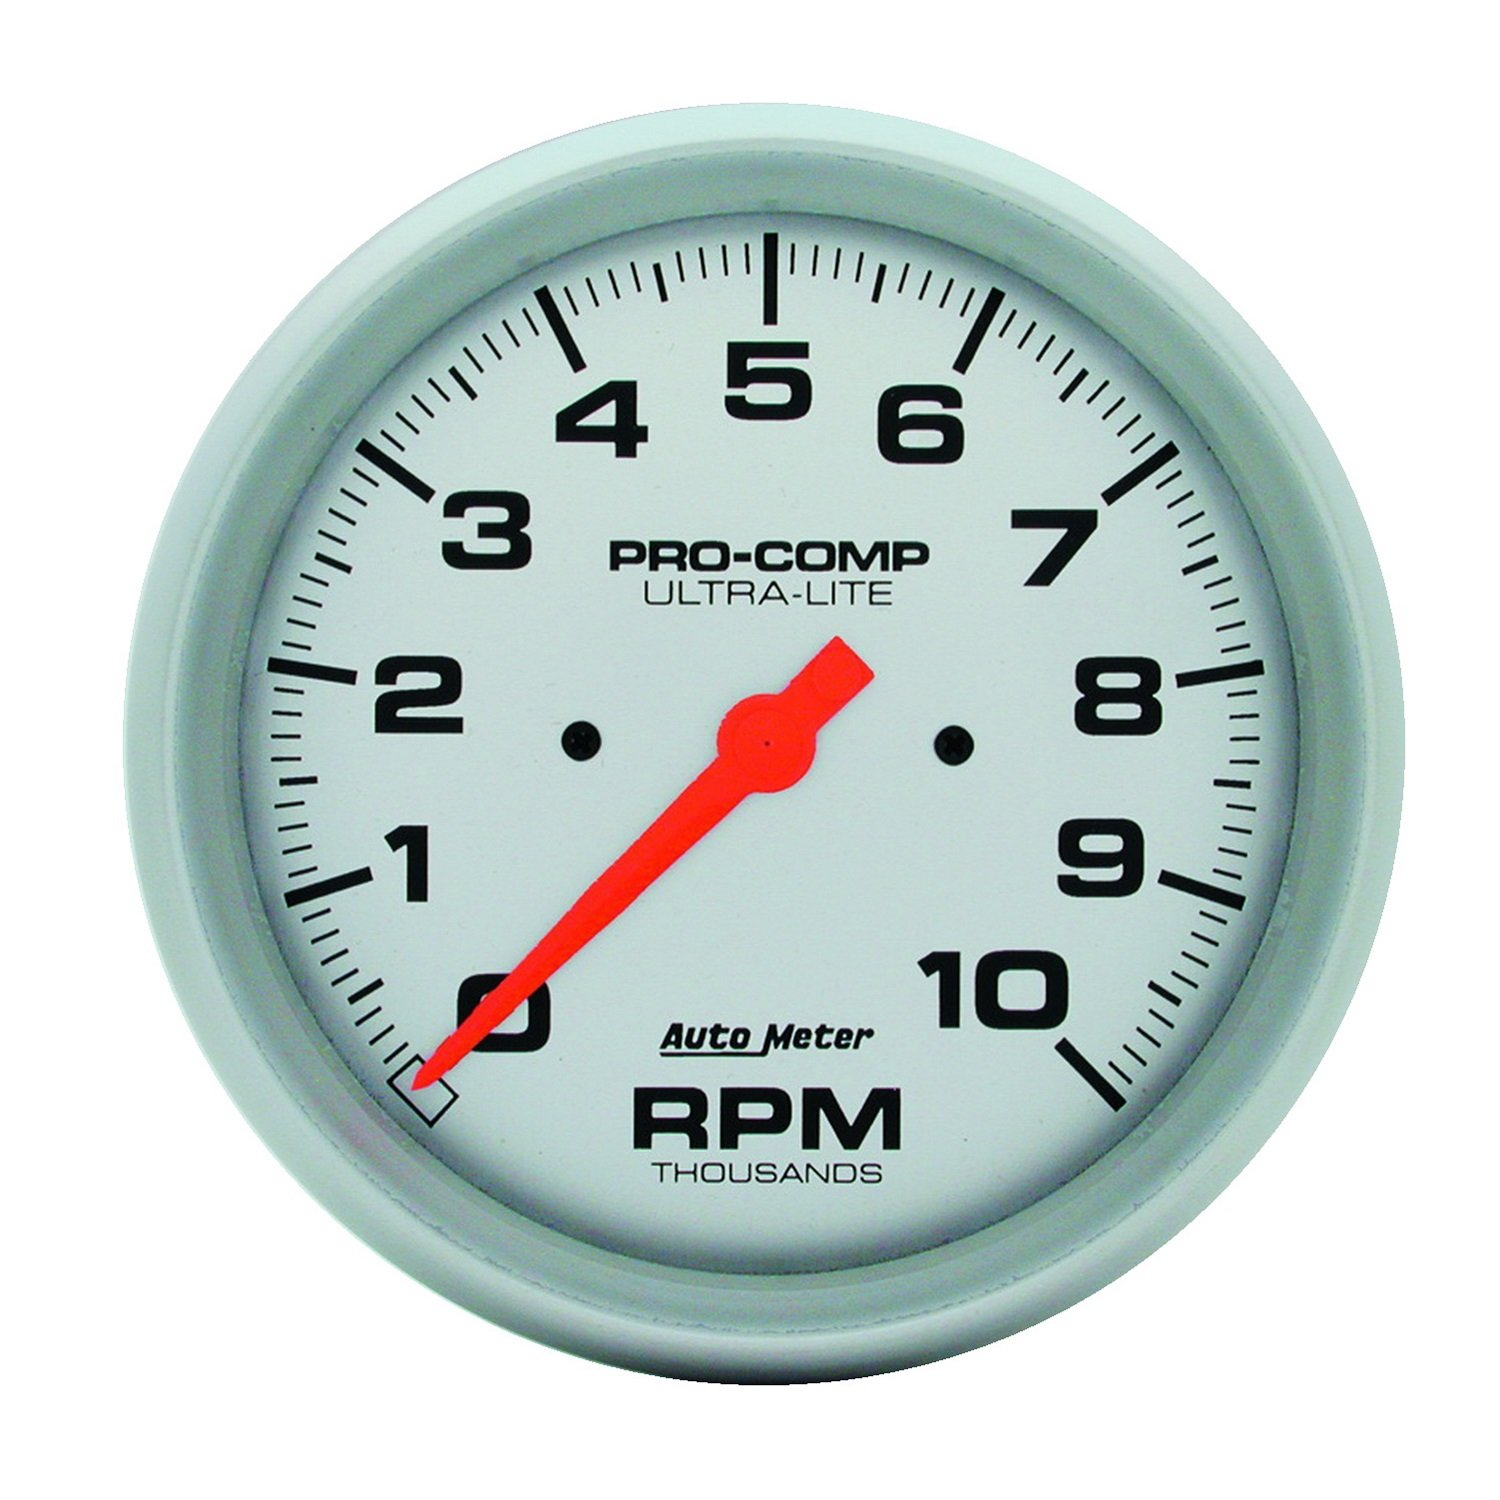 Auto Meter 4498 Ultra-Lite In-Dash Electric Tachometer by Auto Meter (Image #1)